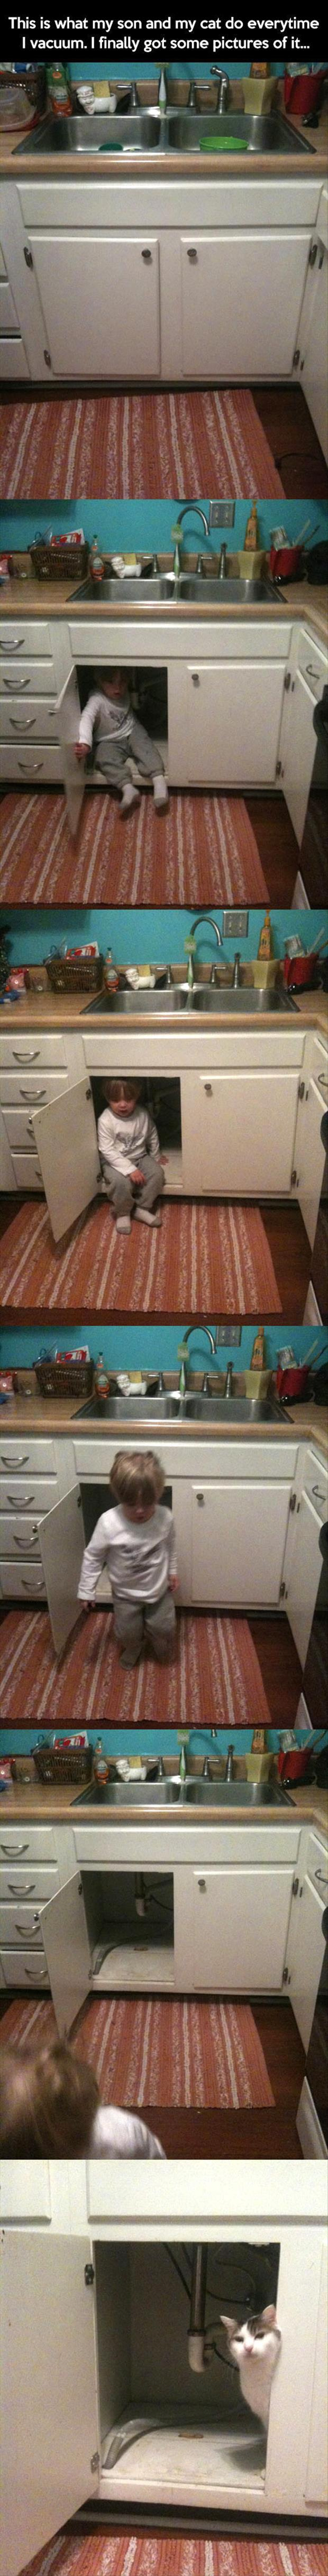 cats and kids hate the vacuum